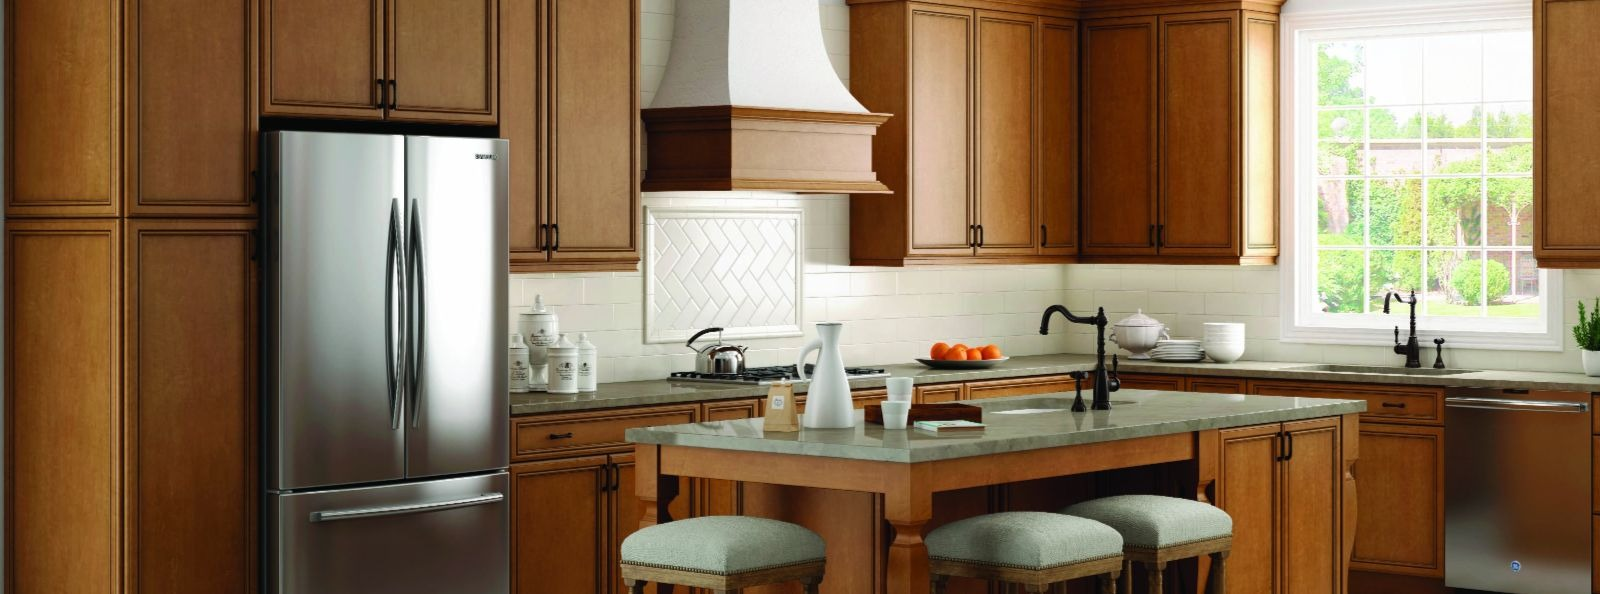 remodeling your kitchen tall trash bags 5 things to consider before wolf home products